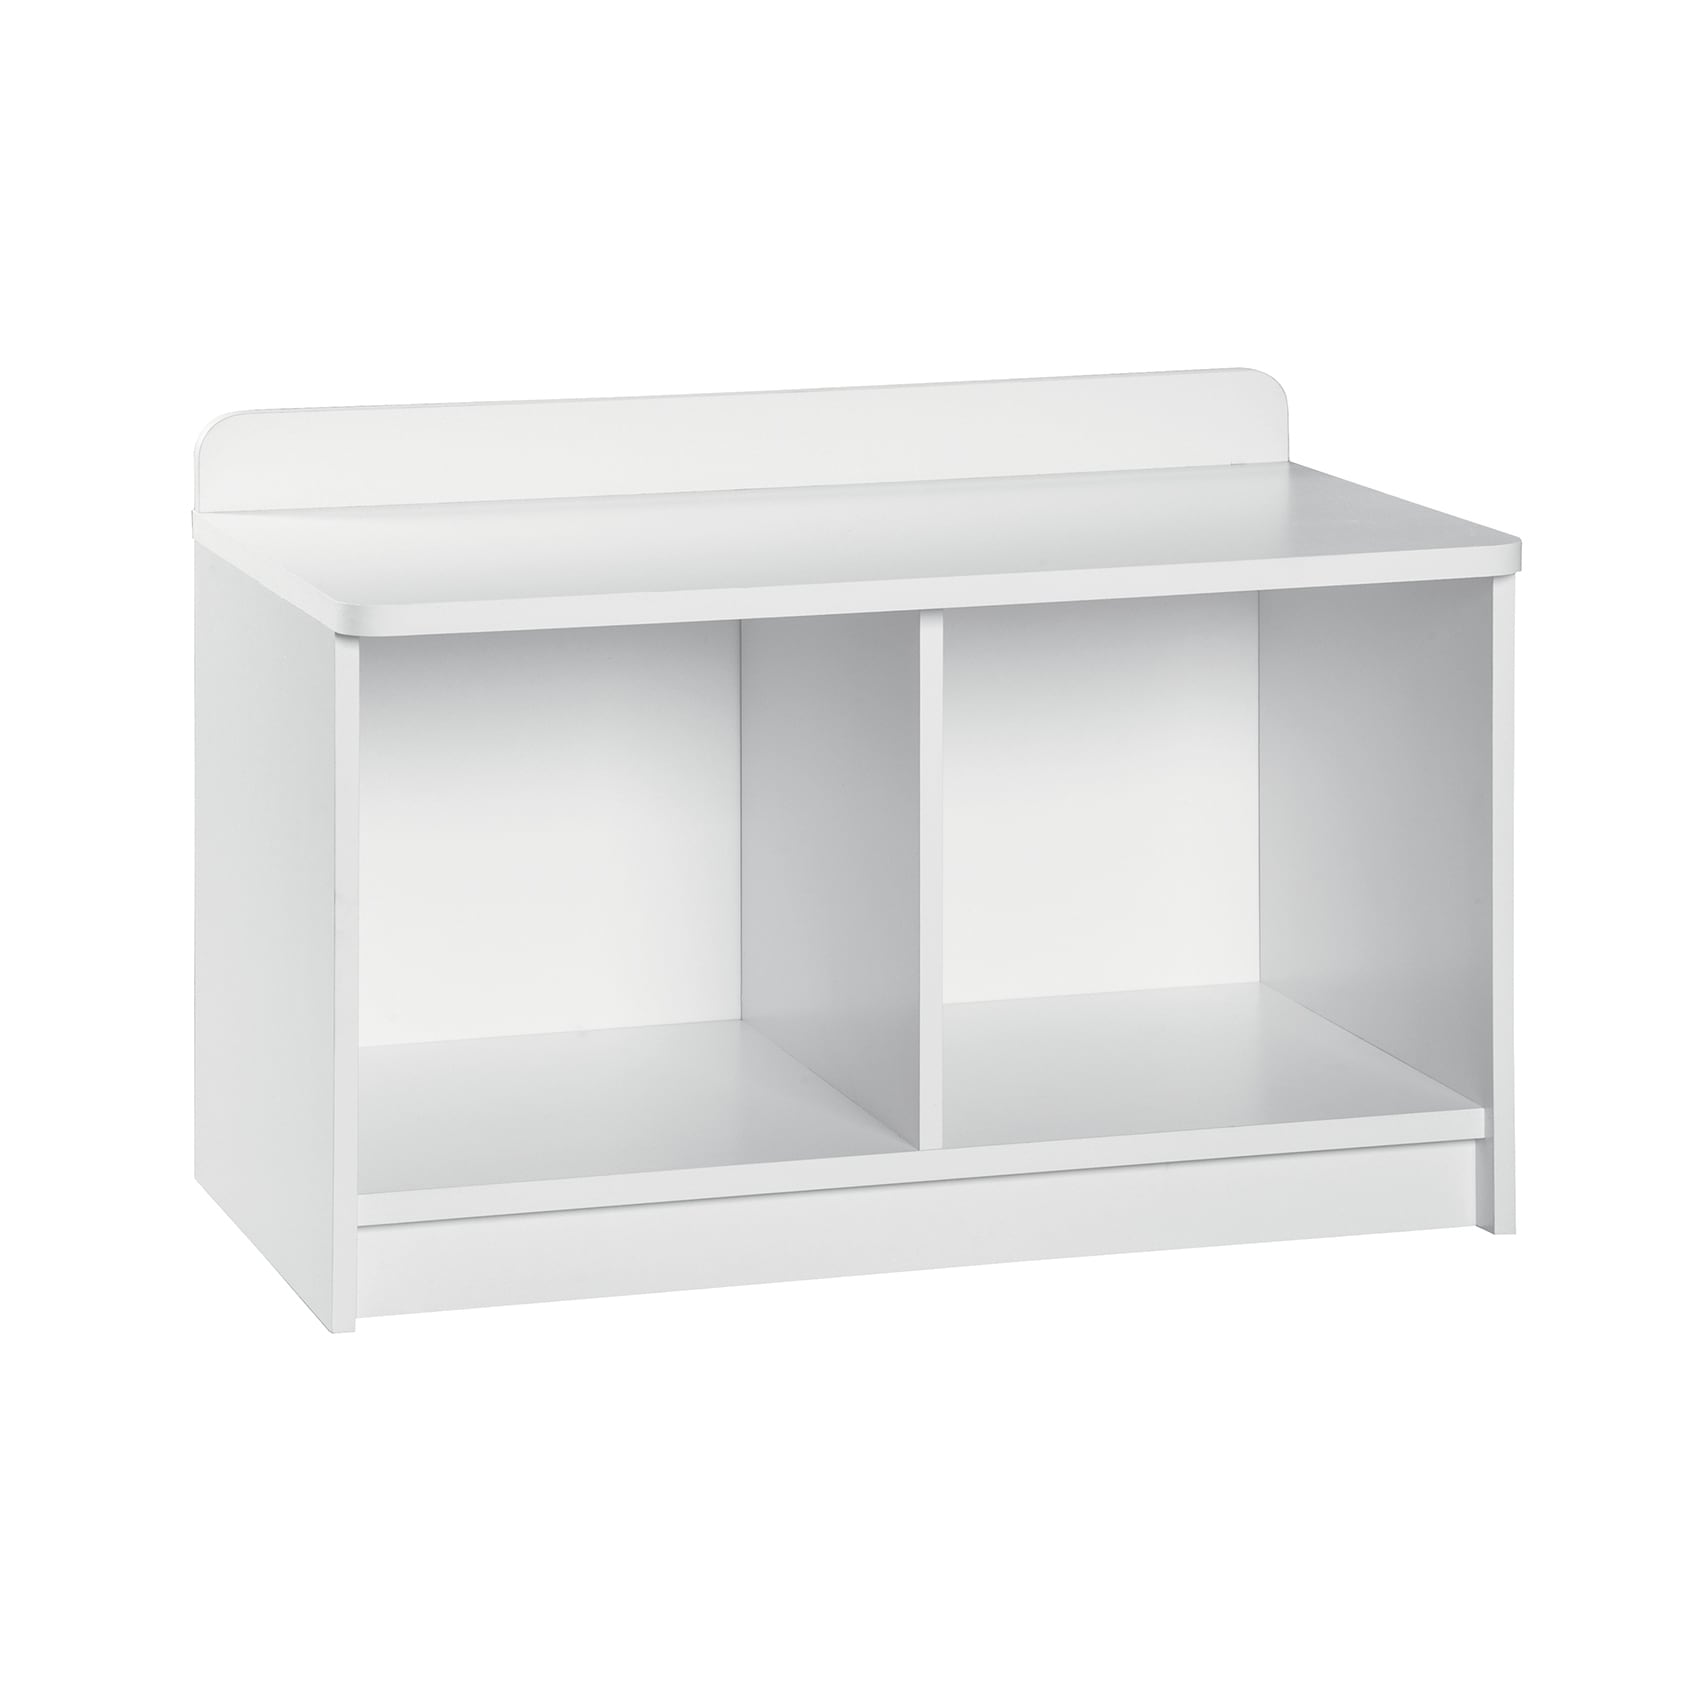 Shop ClosetMaid Kidspace White Small Storage Bench   Free Shipping On  Orders Over $45   Overstock.com   15095908